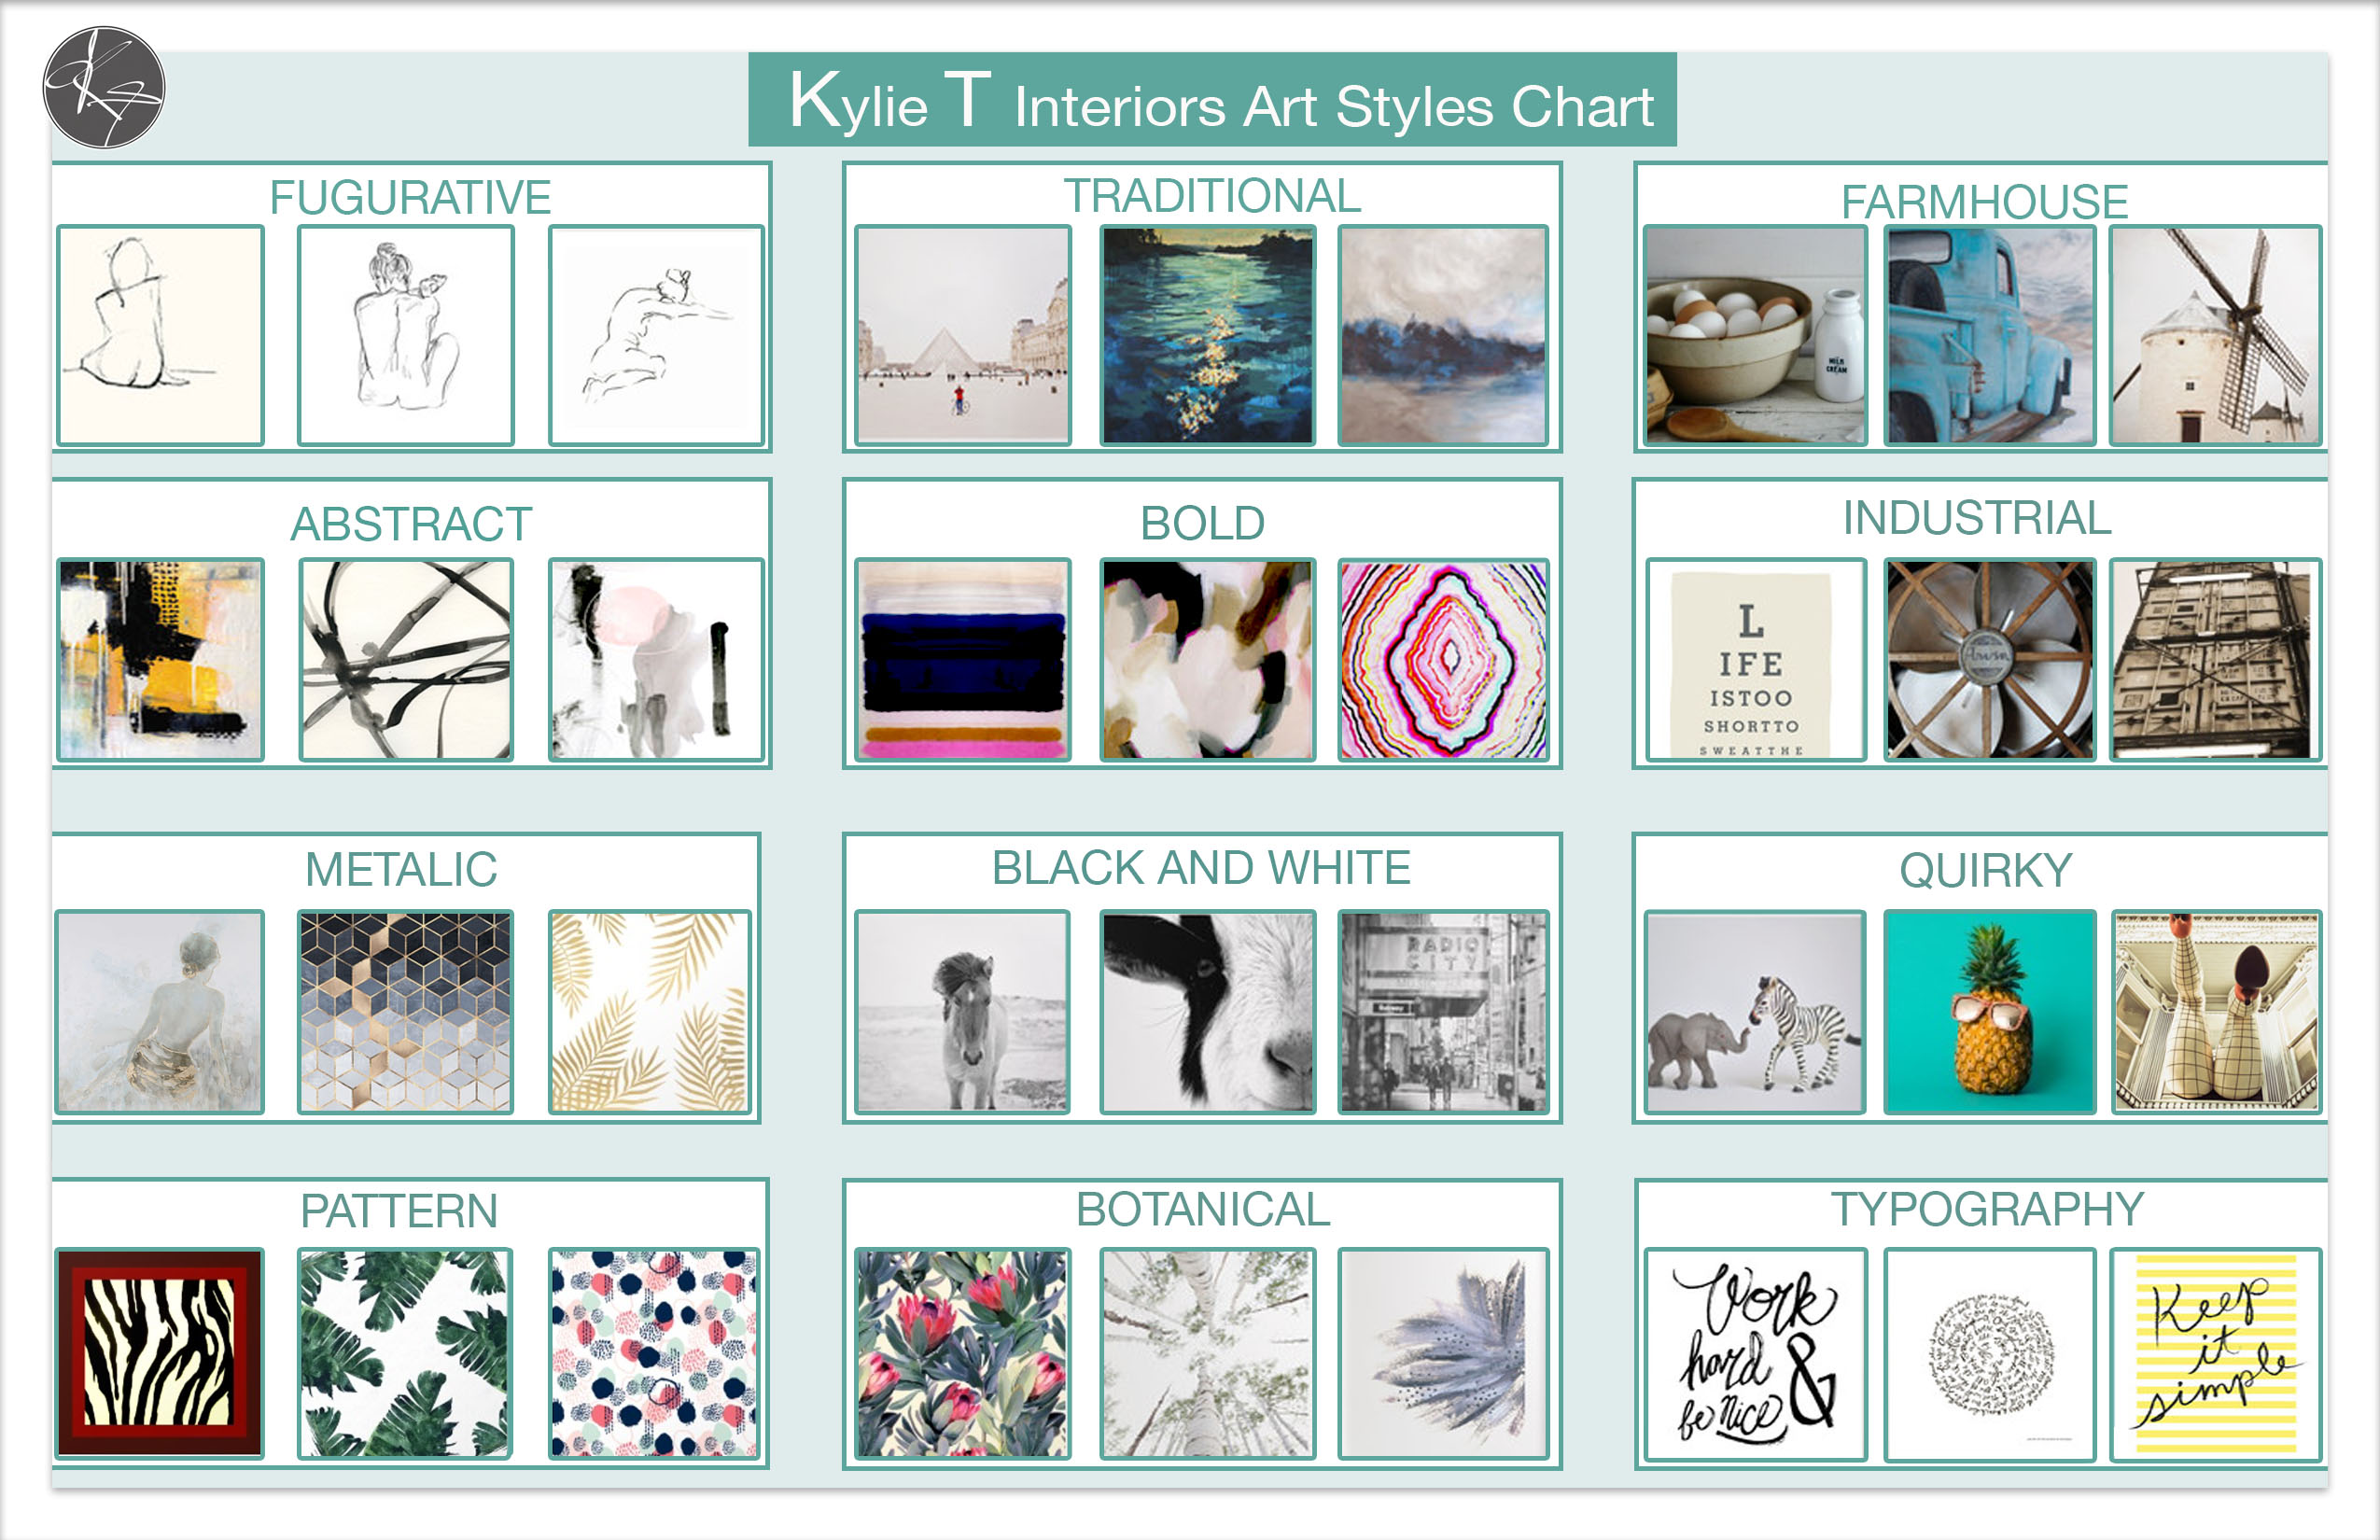 Kylie T Interiors Art Style Chart